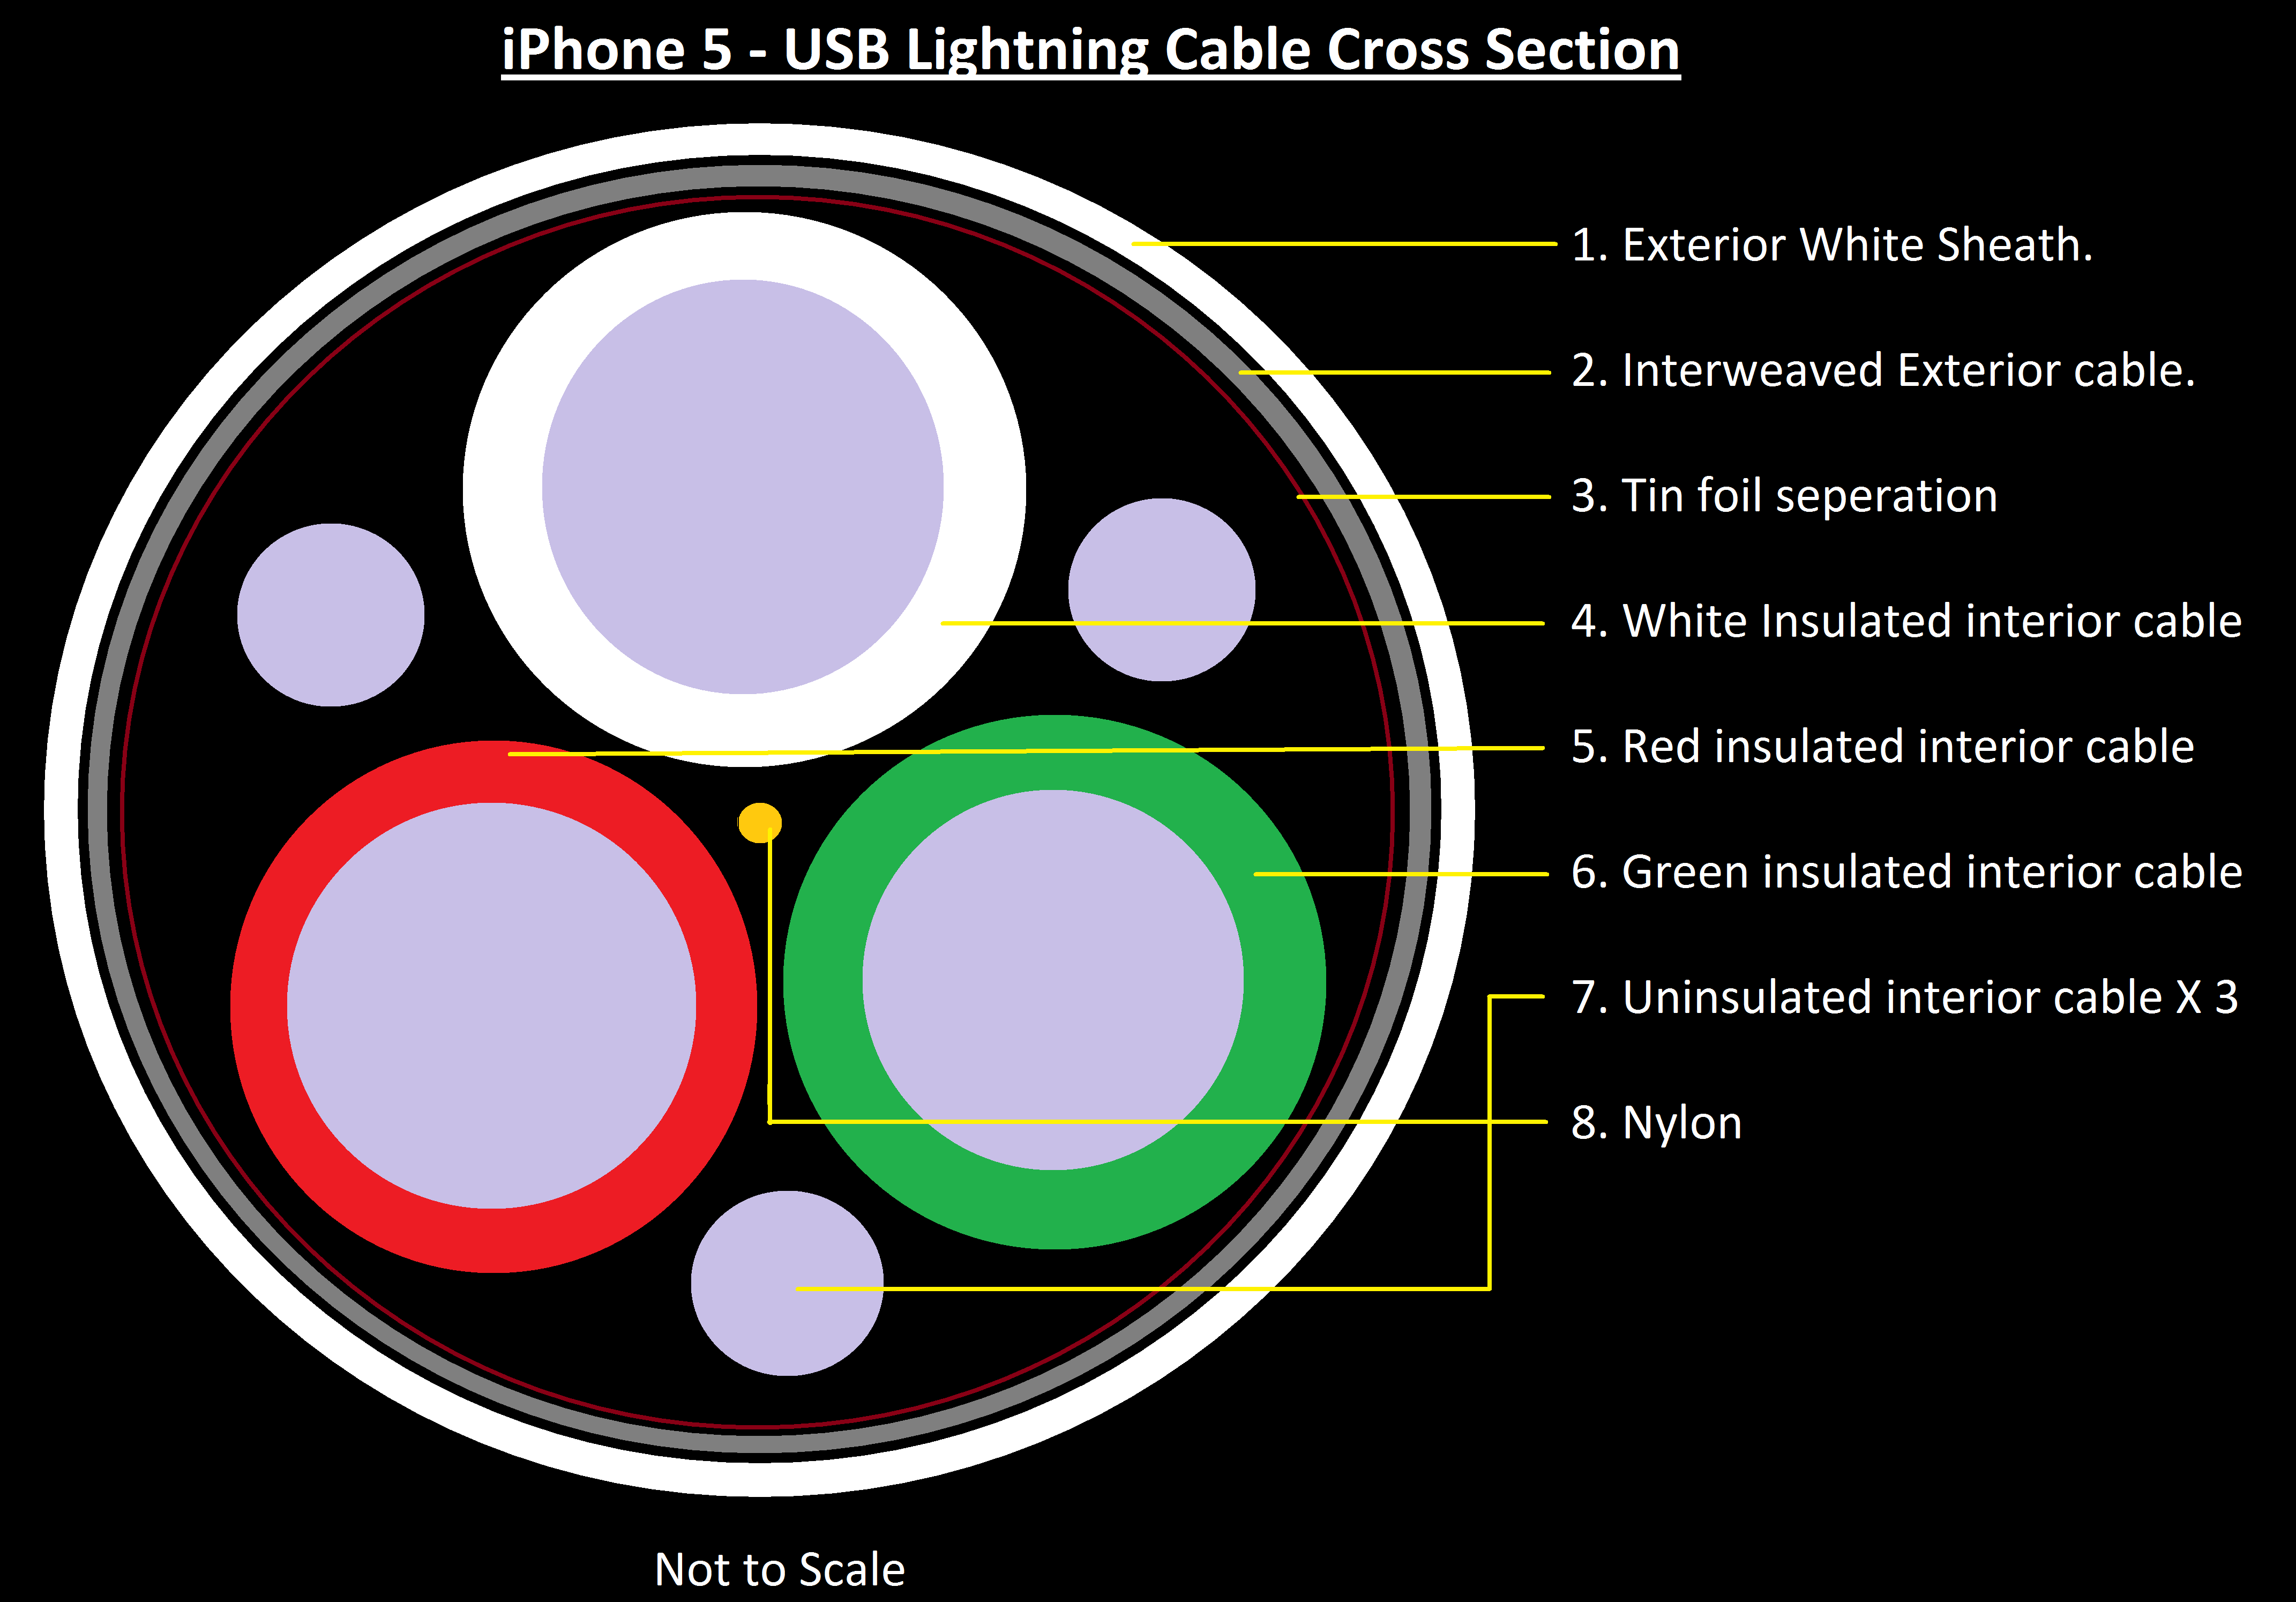 Apple Lightning To Usb Wiring Diagram - Somurich.com on cable installation, cable wiring accessories, cable wiring service, cable lights, cable illustrations, cable drawings, cable tools, cable parts, cable wiring labels,